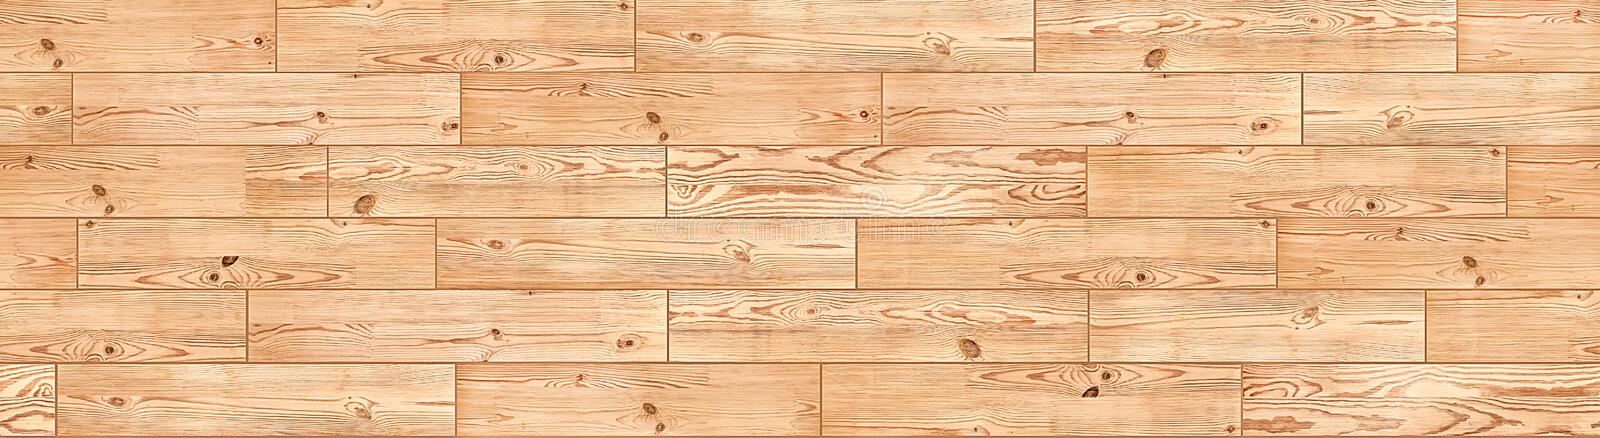 Seamless light wood floor texture. Wooden parquet. Flooring. Seamless wood floor texture. Wooden parquet. Flooring royalty free stock photo